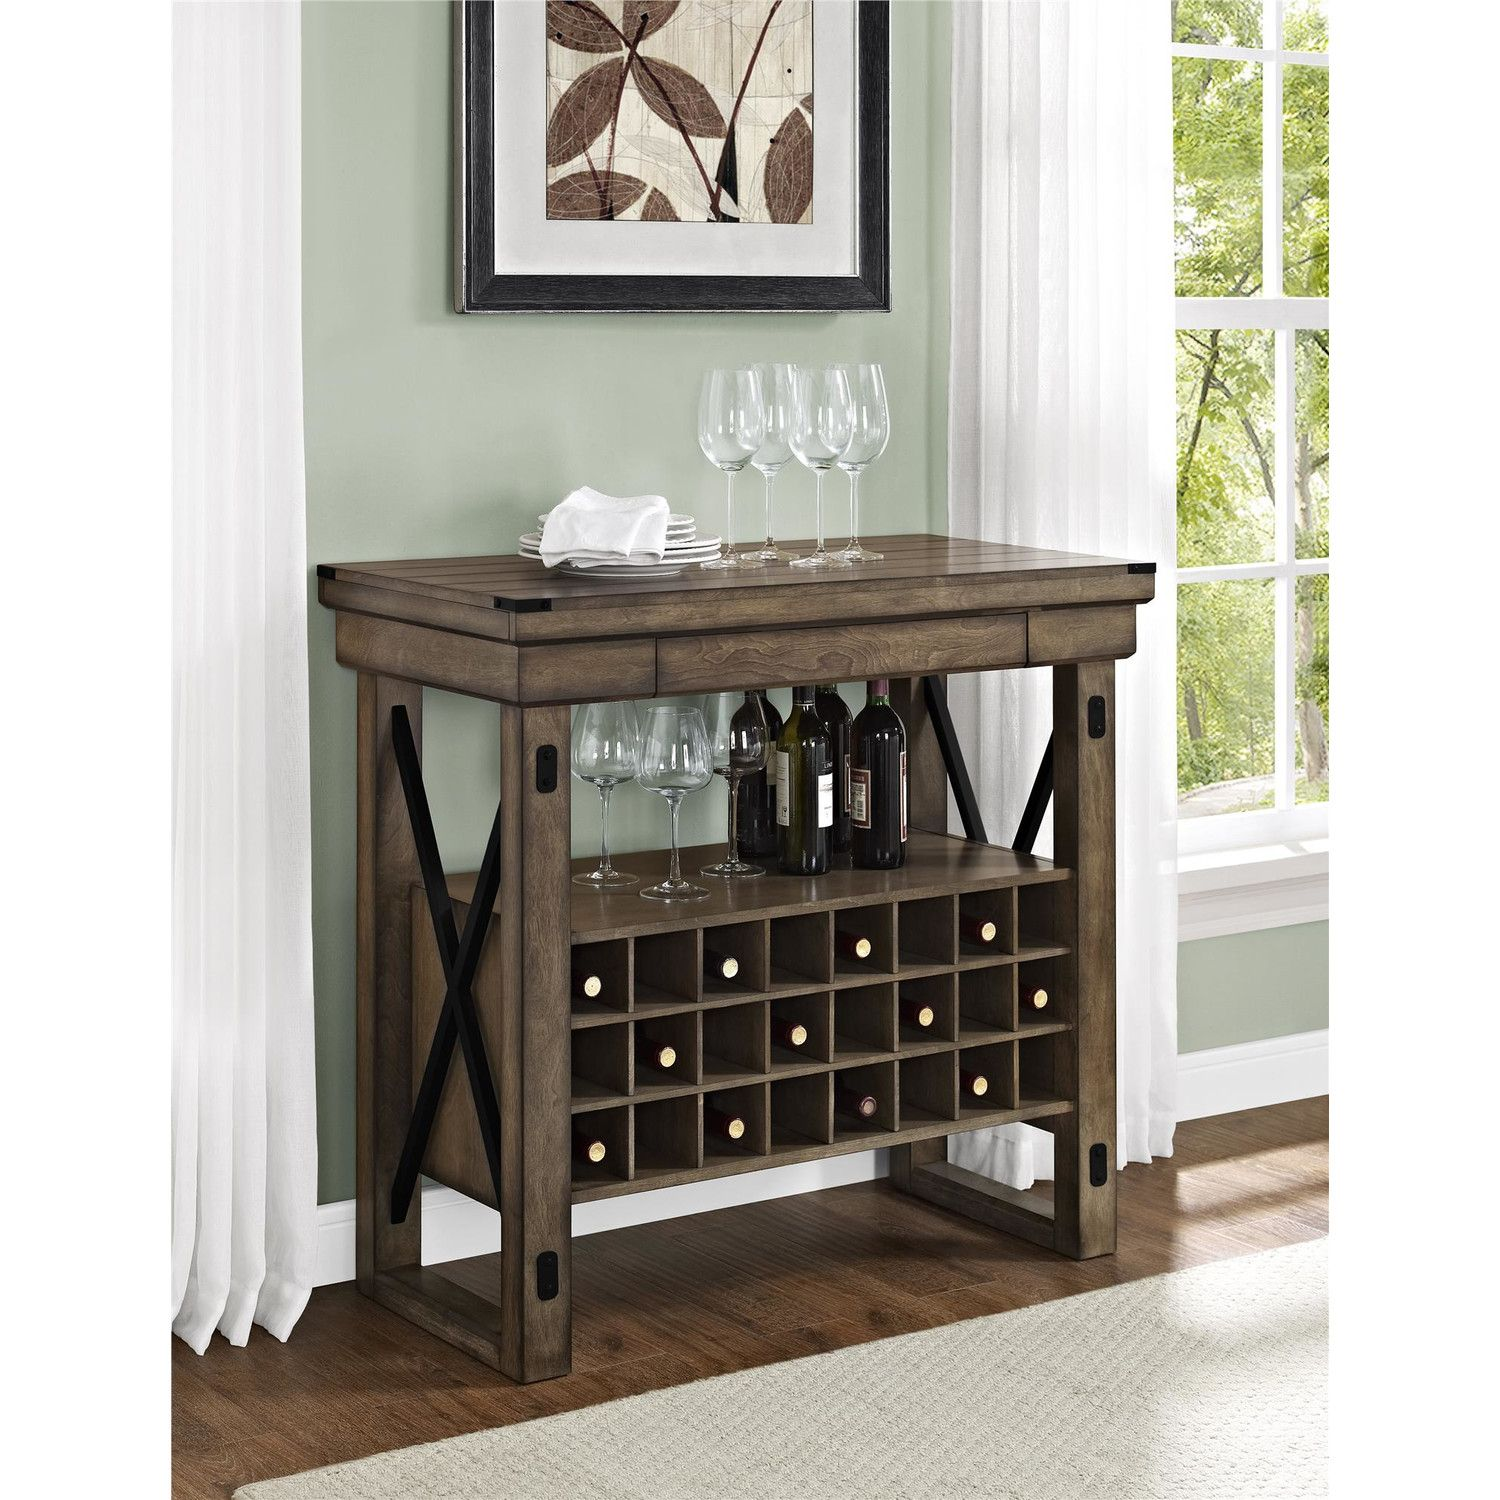 FREE SHIPPING! Shop Wayfair For Altra Furniture Wildwood